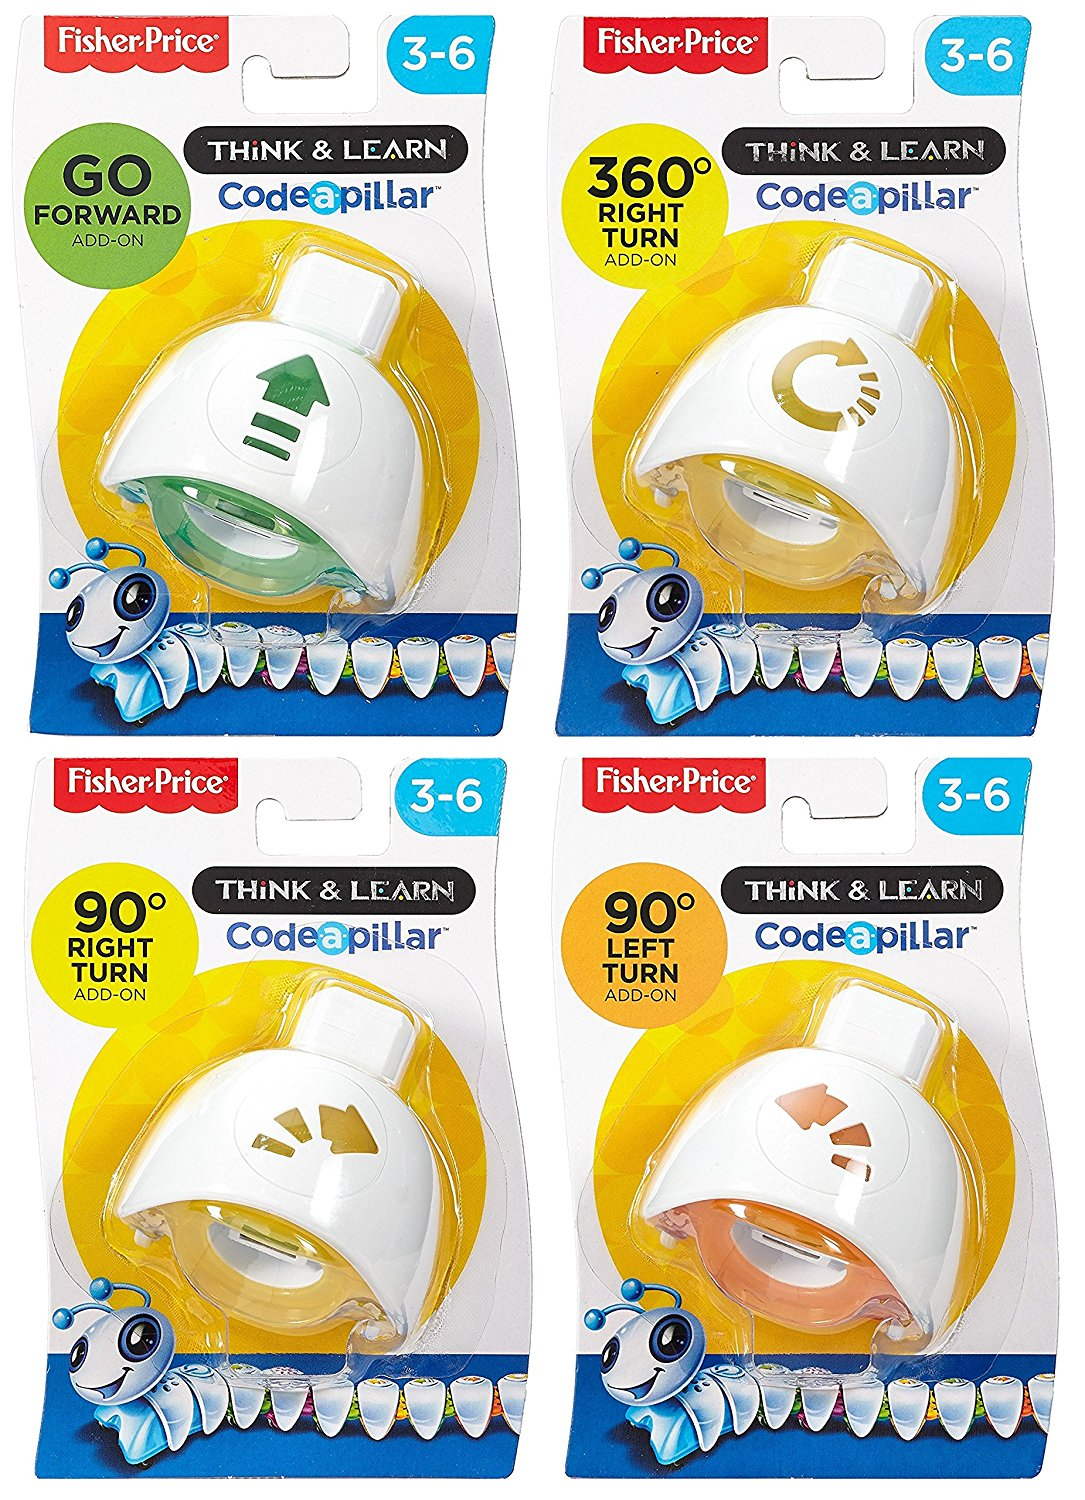 Bundle - 4 items: Fisher-Price Think & Learn Code-a-pillar Go Forward, 360° Right Turn, 90° Left Turn, and 90° Right Turn